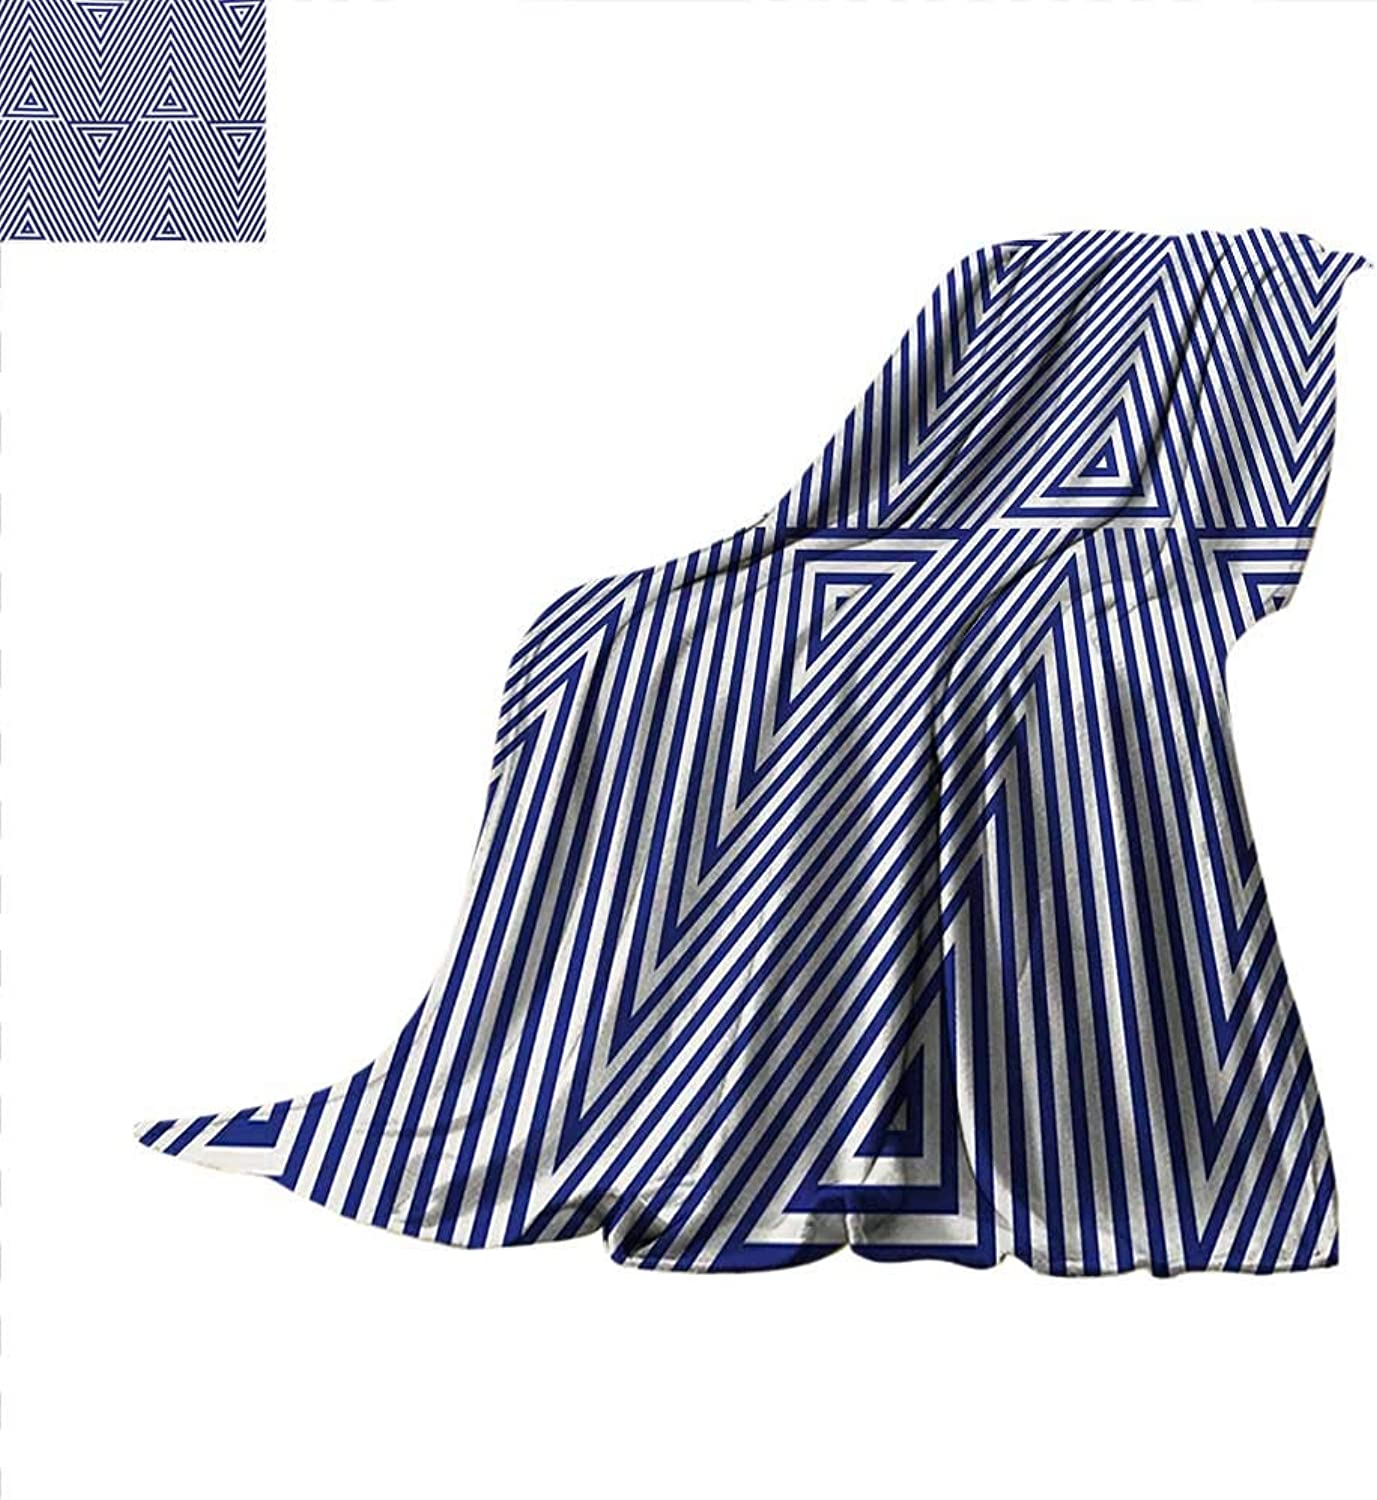 Navy bluee Weave Pattern Blanket Cool Pattern with Geometrical Triangle Shapes in Striped Designed Image Summer Quilt Comforter 60 x50  Dark bluee and White